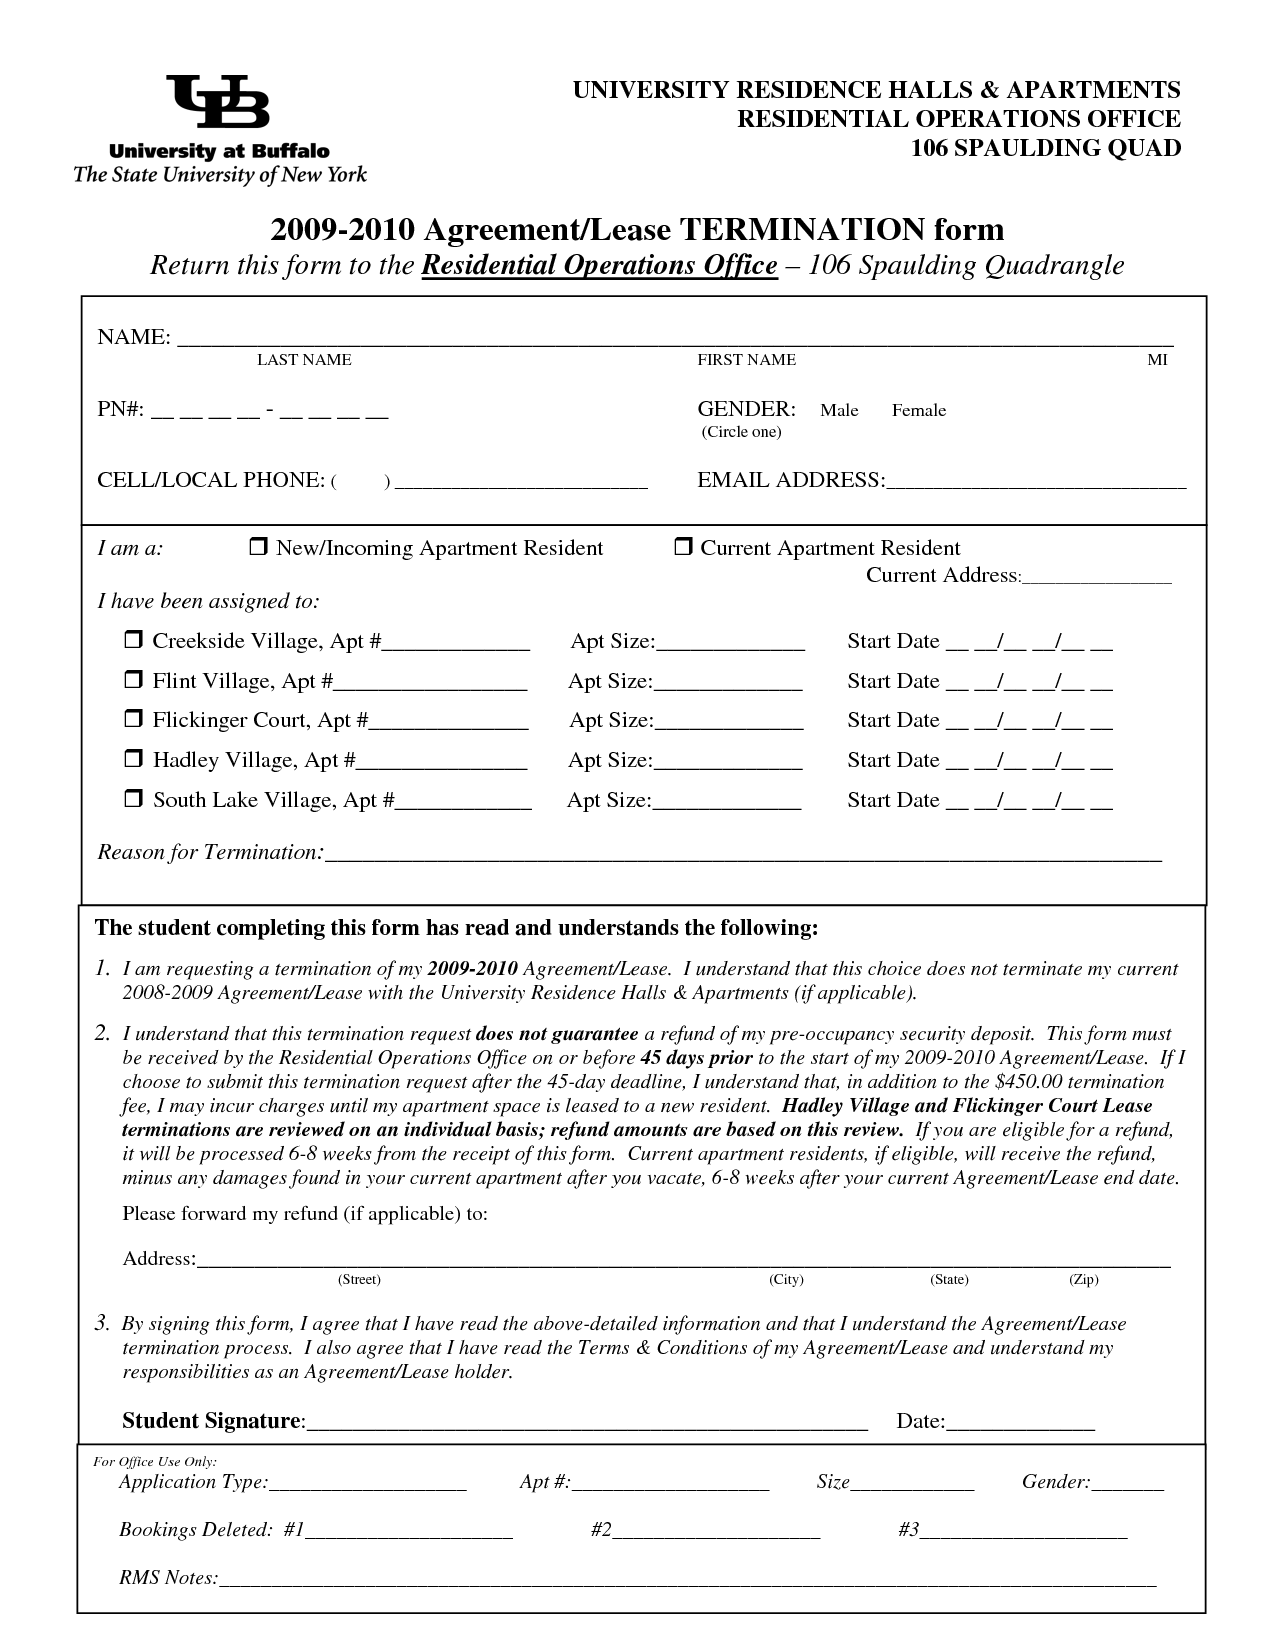 Lease termination forms by jessicaderusso termination of lease lease termination forms by jessicaderusso termination of lease agreement form platinumwayz